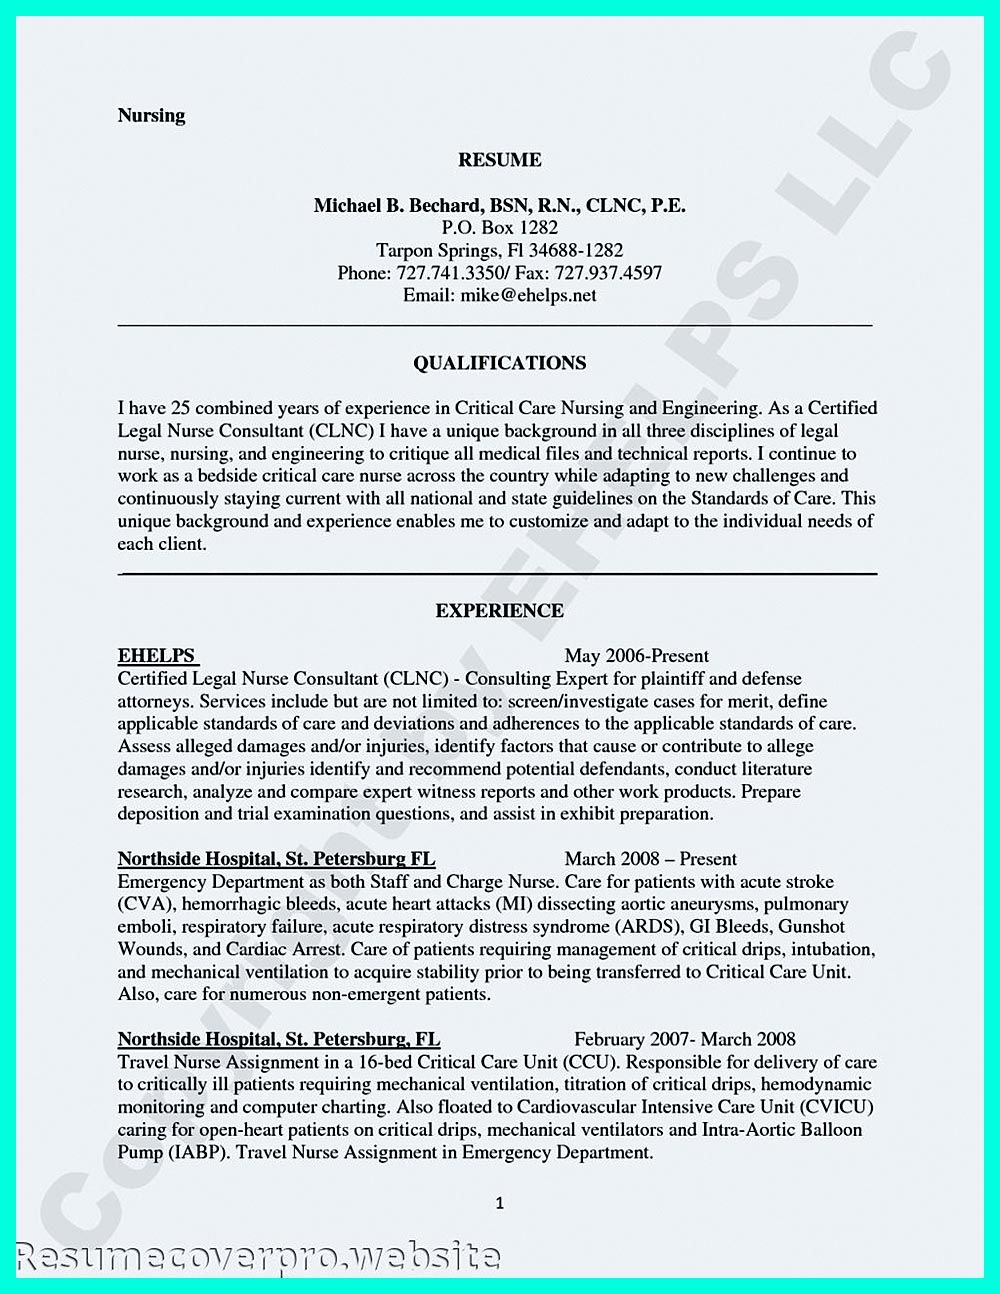 Travel Nurse Resume Critical Care Nurse Resume Has Skills Or Objectives That Are